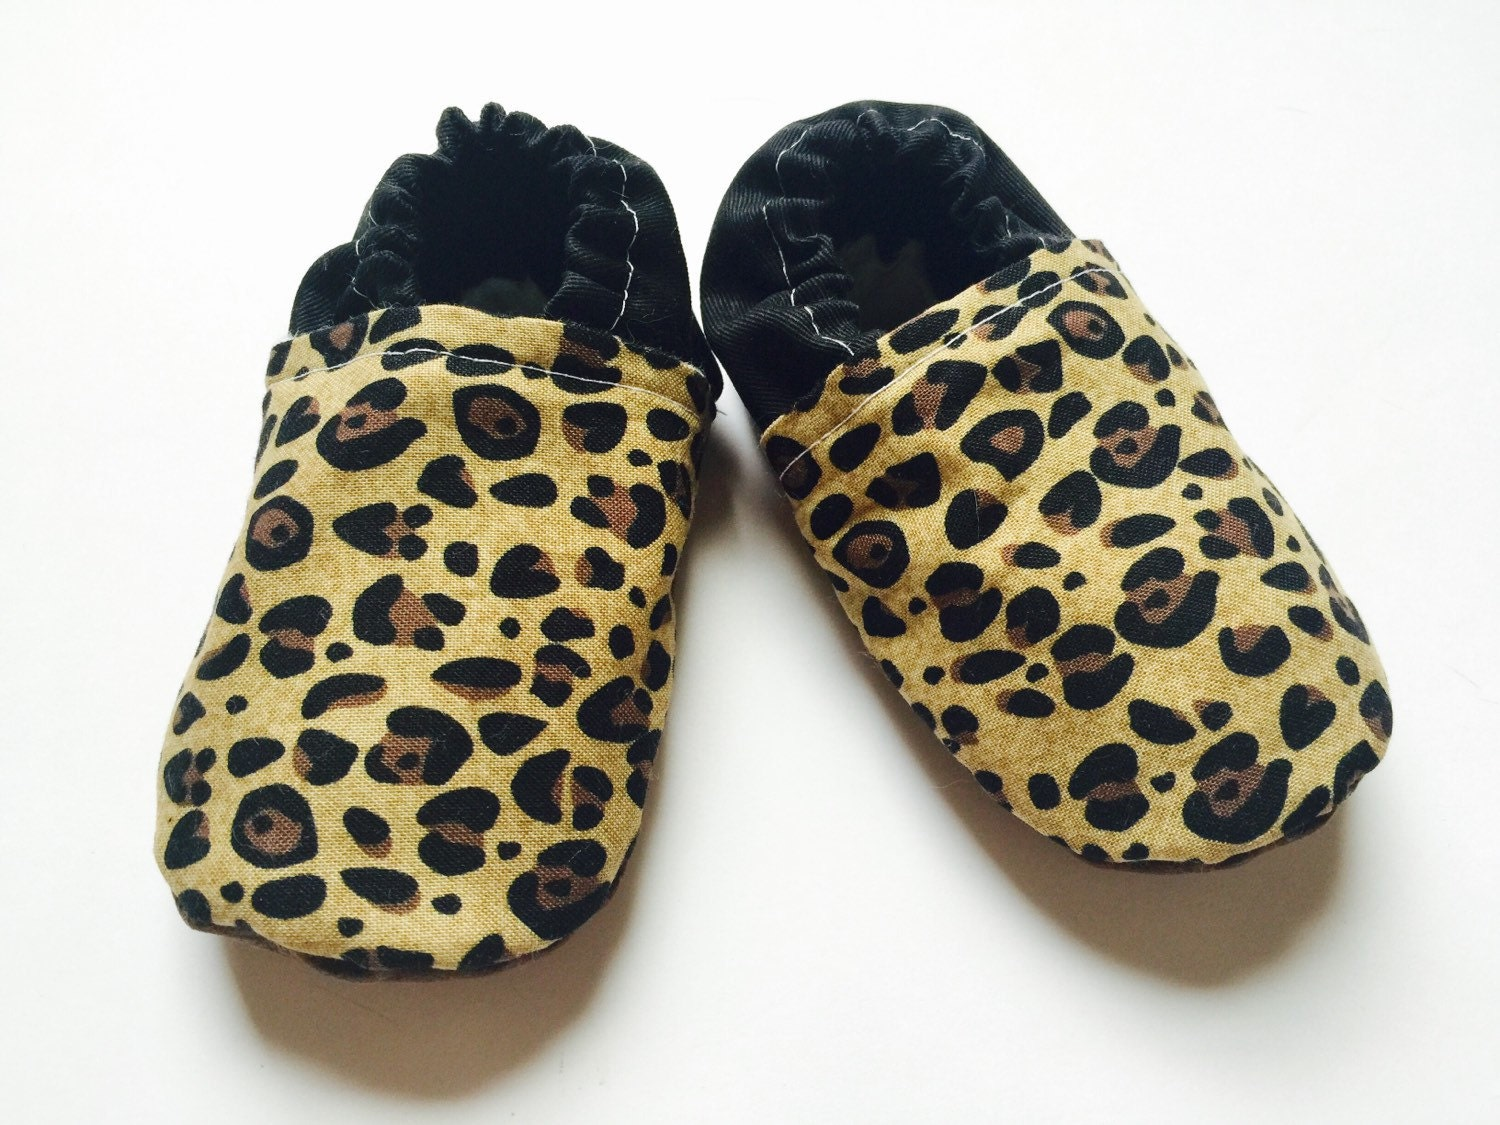 Whole baby boots genuine leather non slip shoes mixed pe nord leopard print leather sheepskin baby shoes h m baby boots leopard print shoes babies kids rubber sole falt leopard print cotton todder baby dress shoes leopard print baby shoe. Related. Sarah timoti. Post navigation.